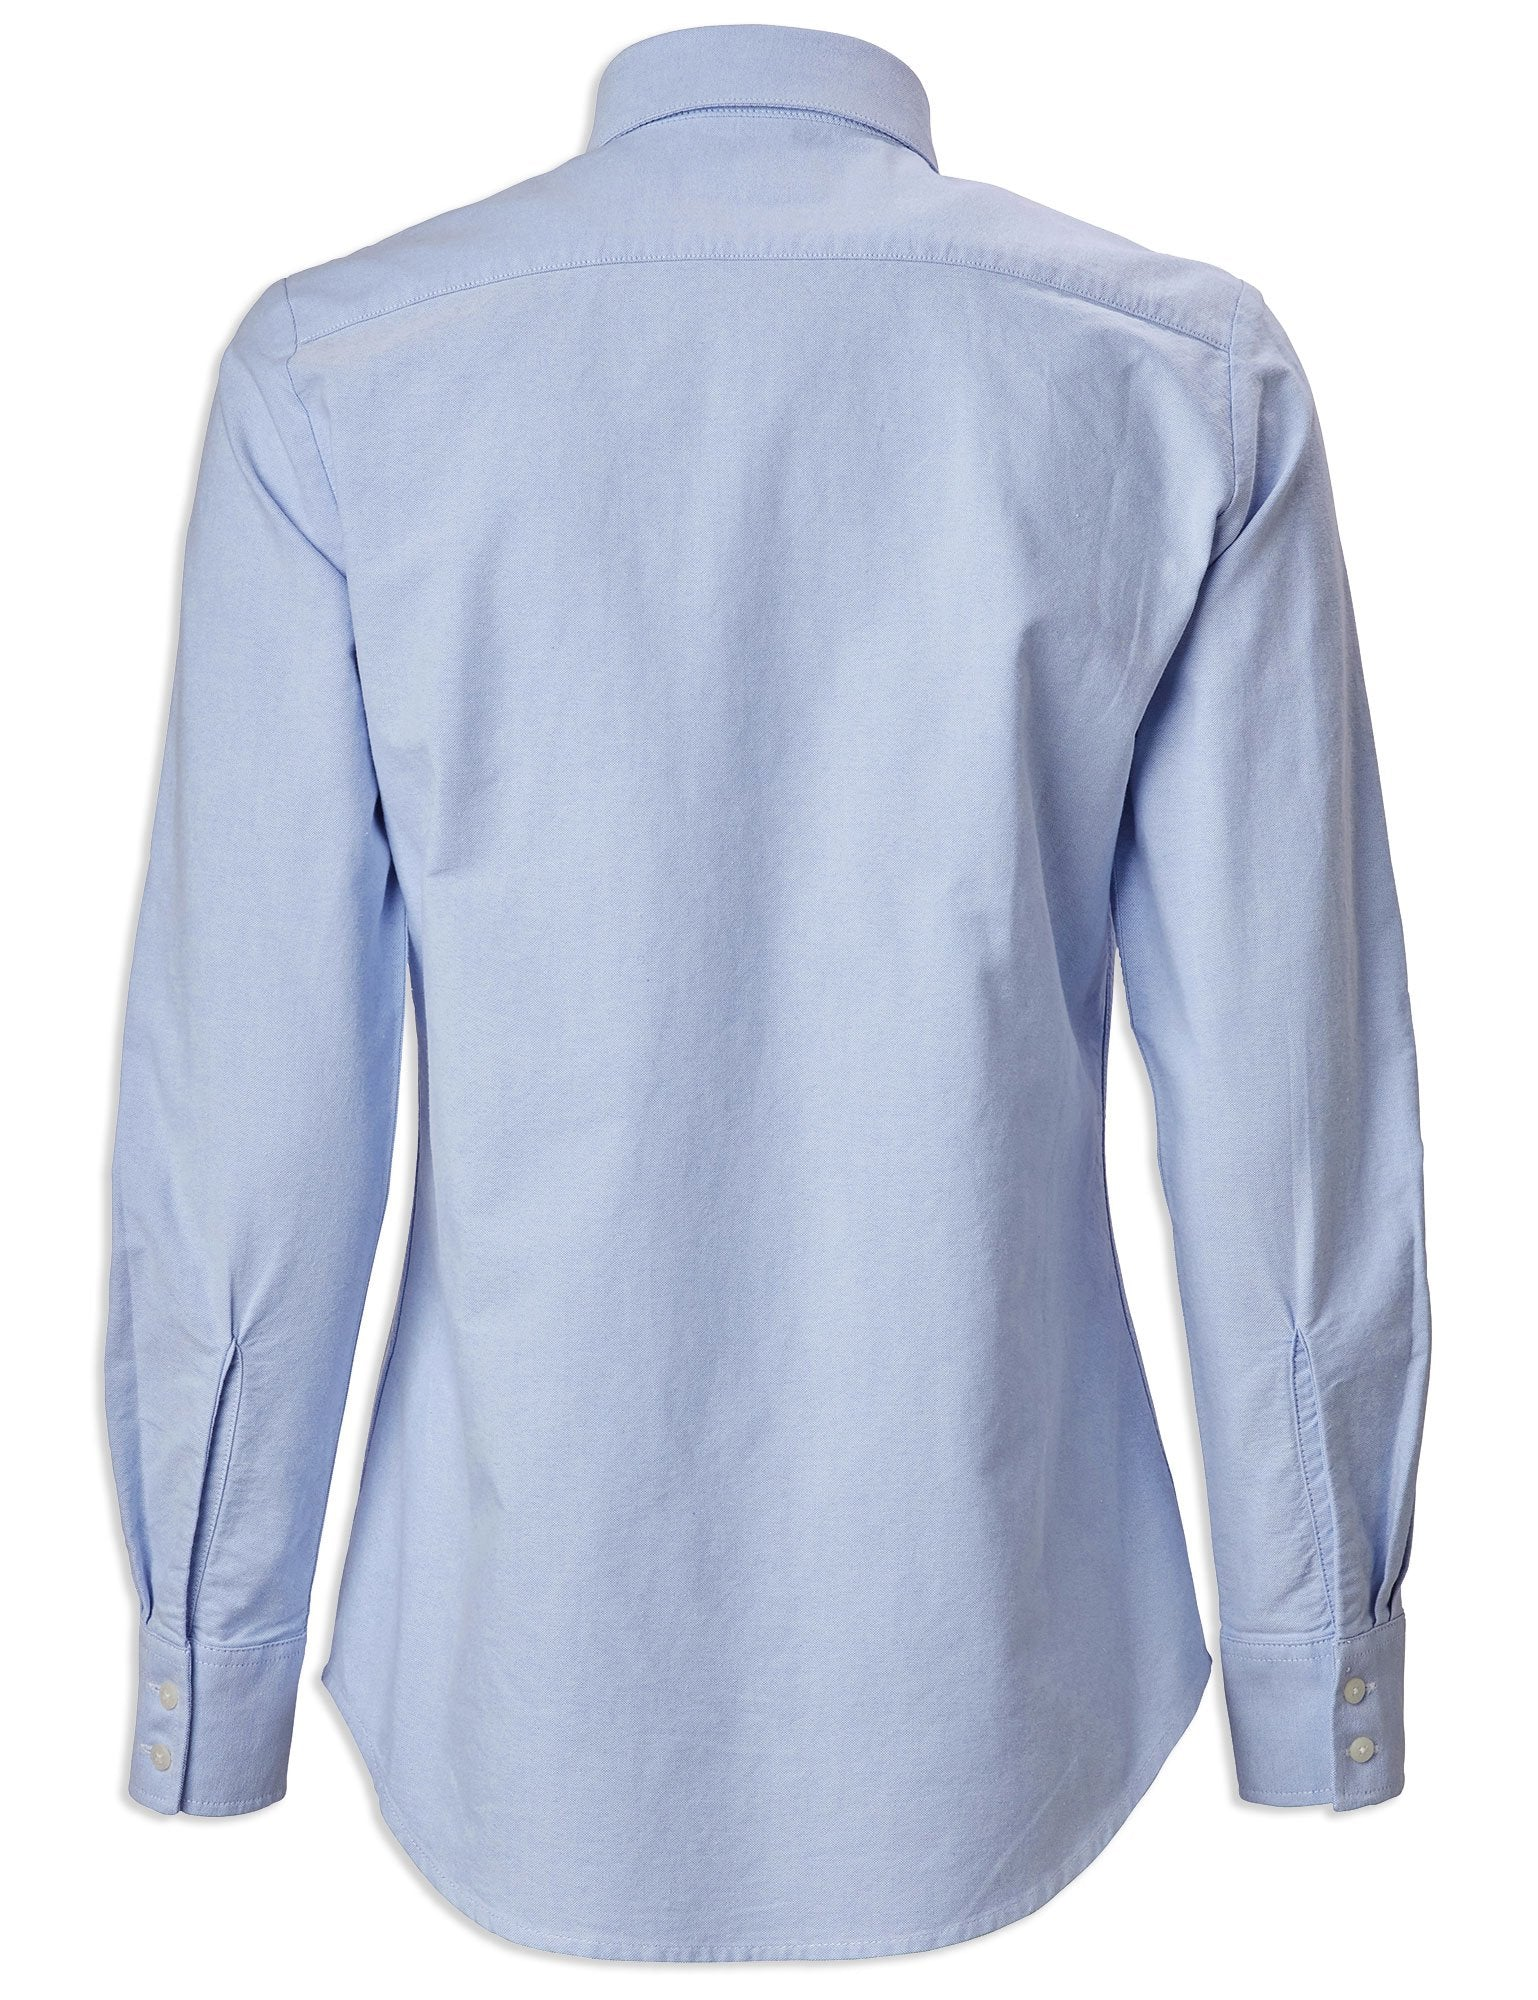 Back View Musto Ladies Oxford Long Sleeve Shirt